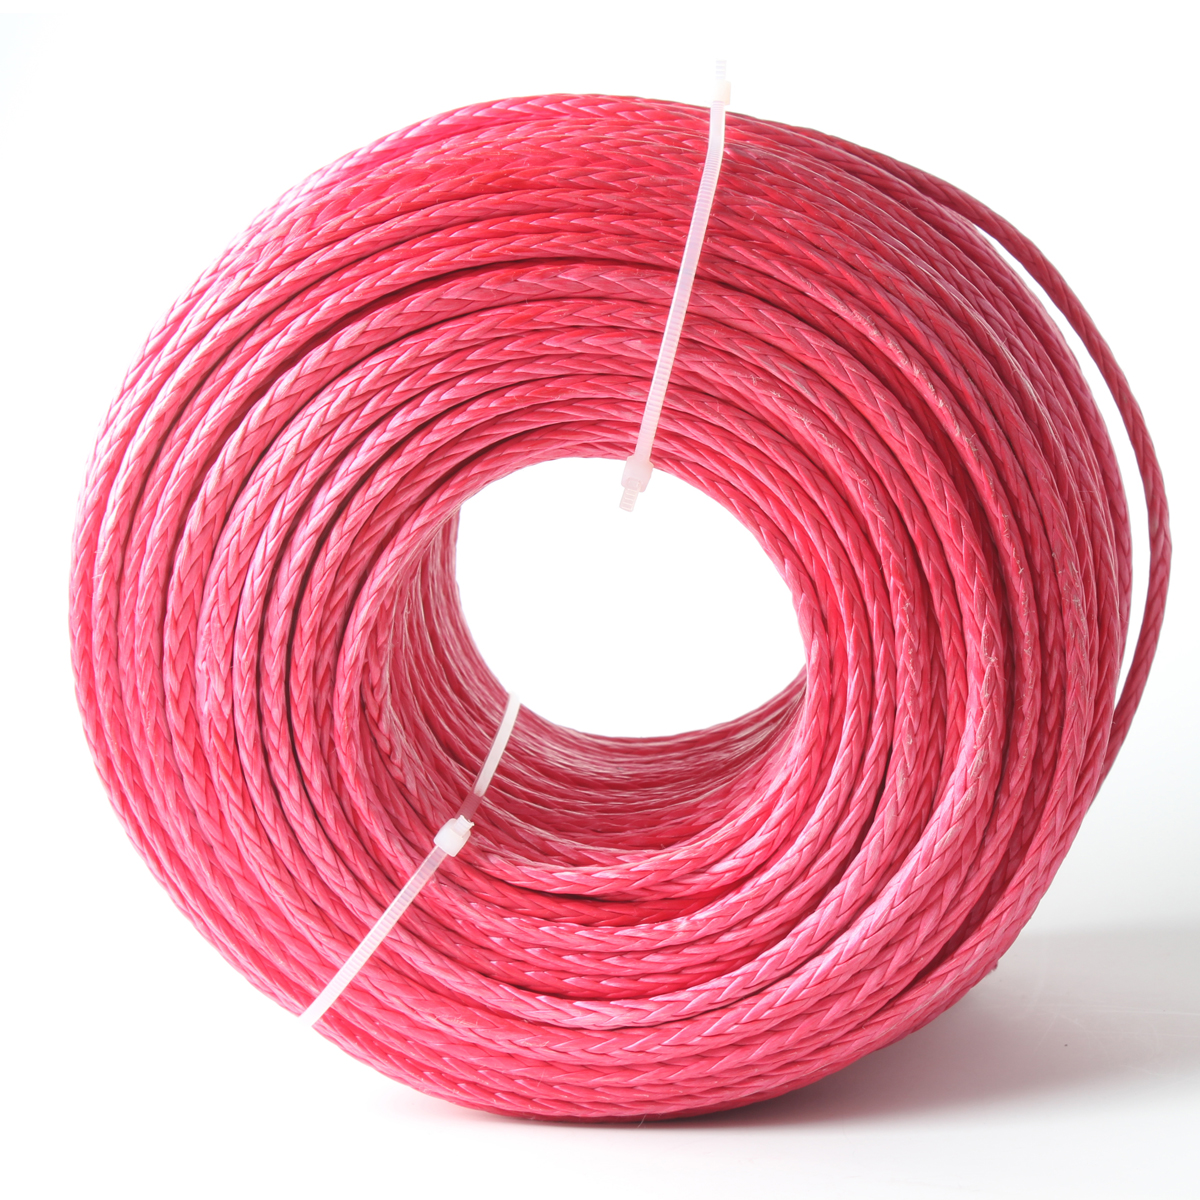 "4mm 5/32"" UHMWPE hang glider towing winch rope"